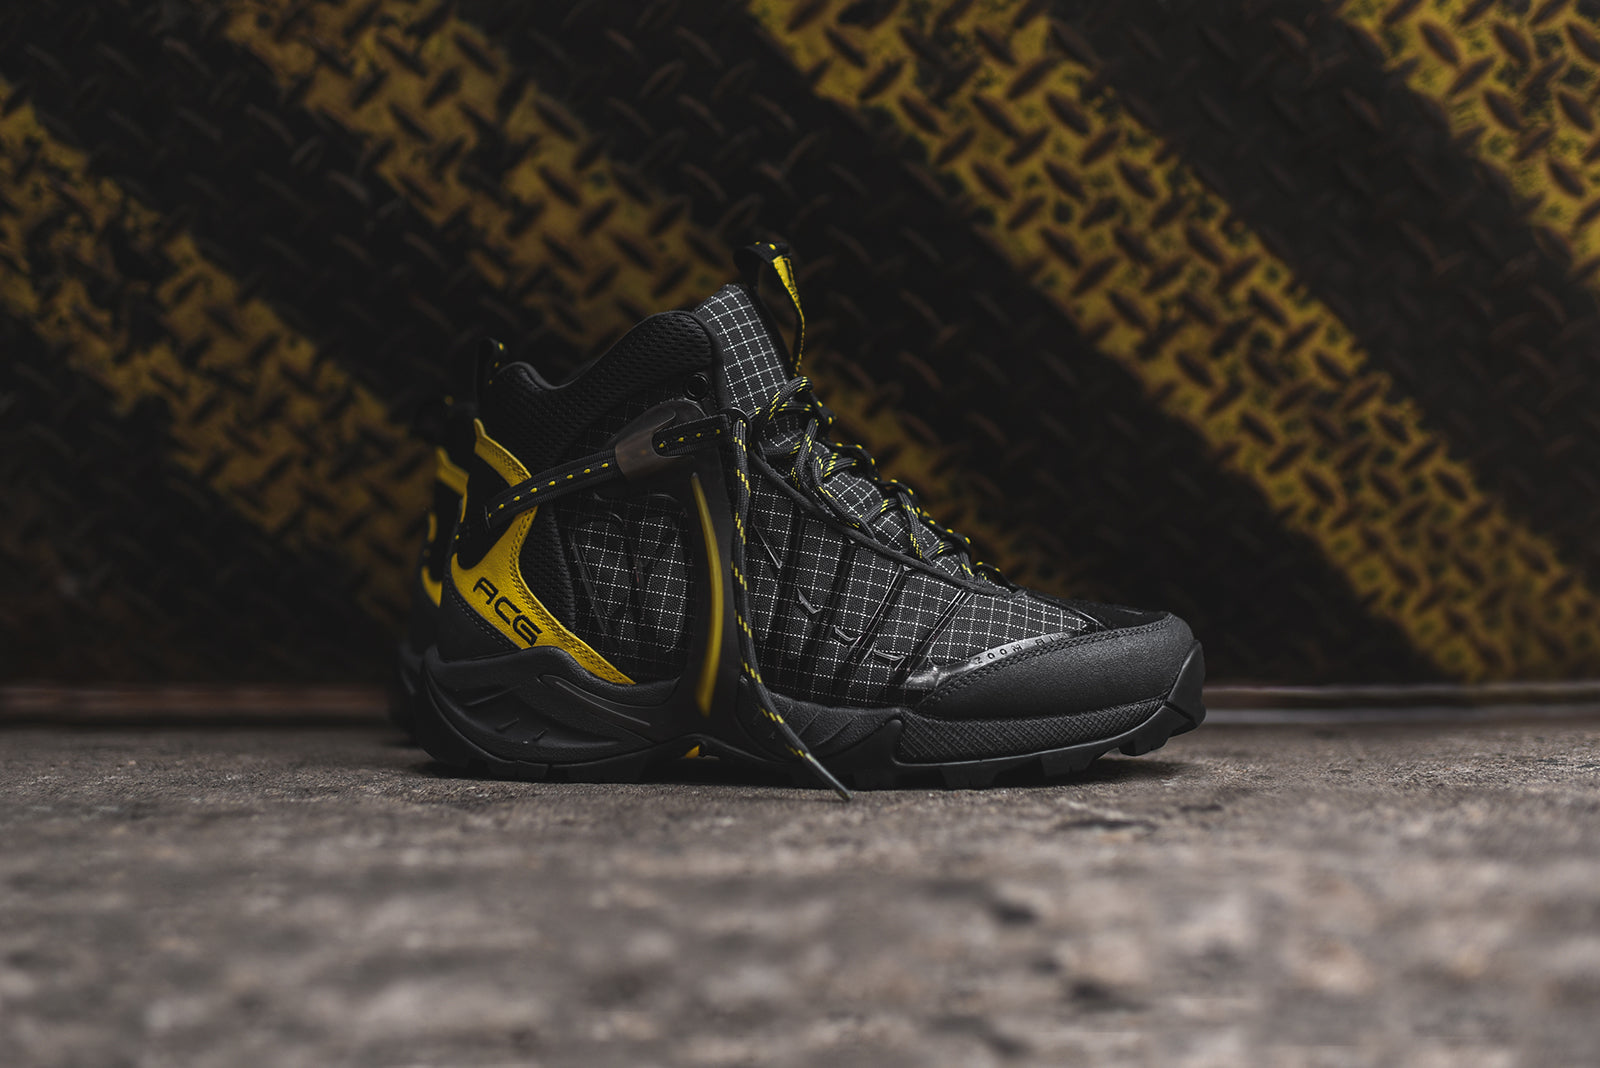 b159ce74194d Nike ACG Air Zoom Tallac Lite OG Boot - Black   Yellow. August 12